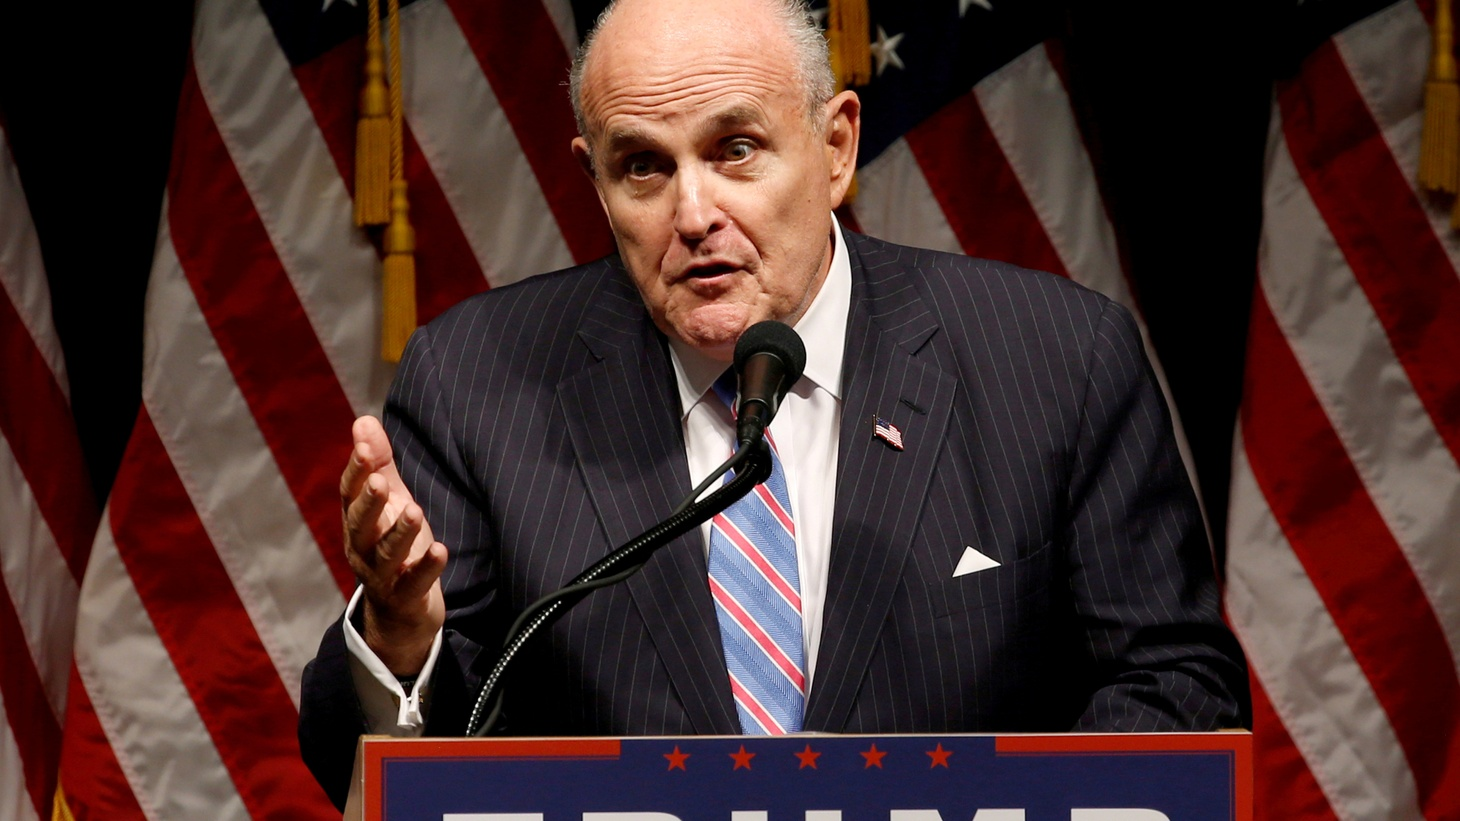 Rudy Giuliani delivers remarks before Donald Trump rallies with supporters in Council Bluffs, Iowa, U.S., September 28, 2016.